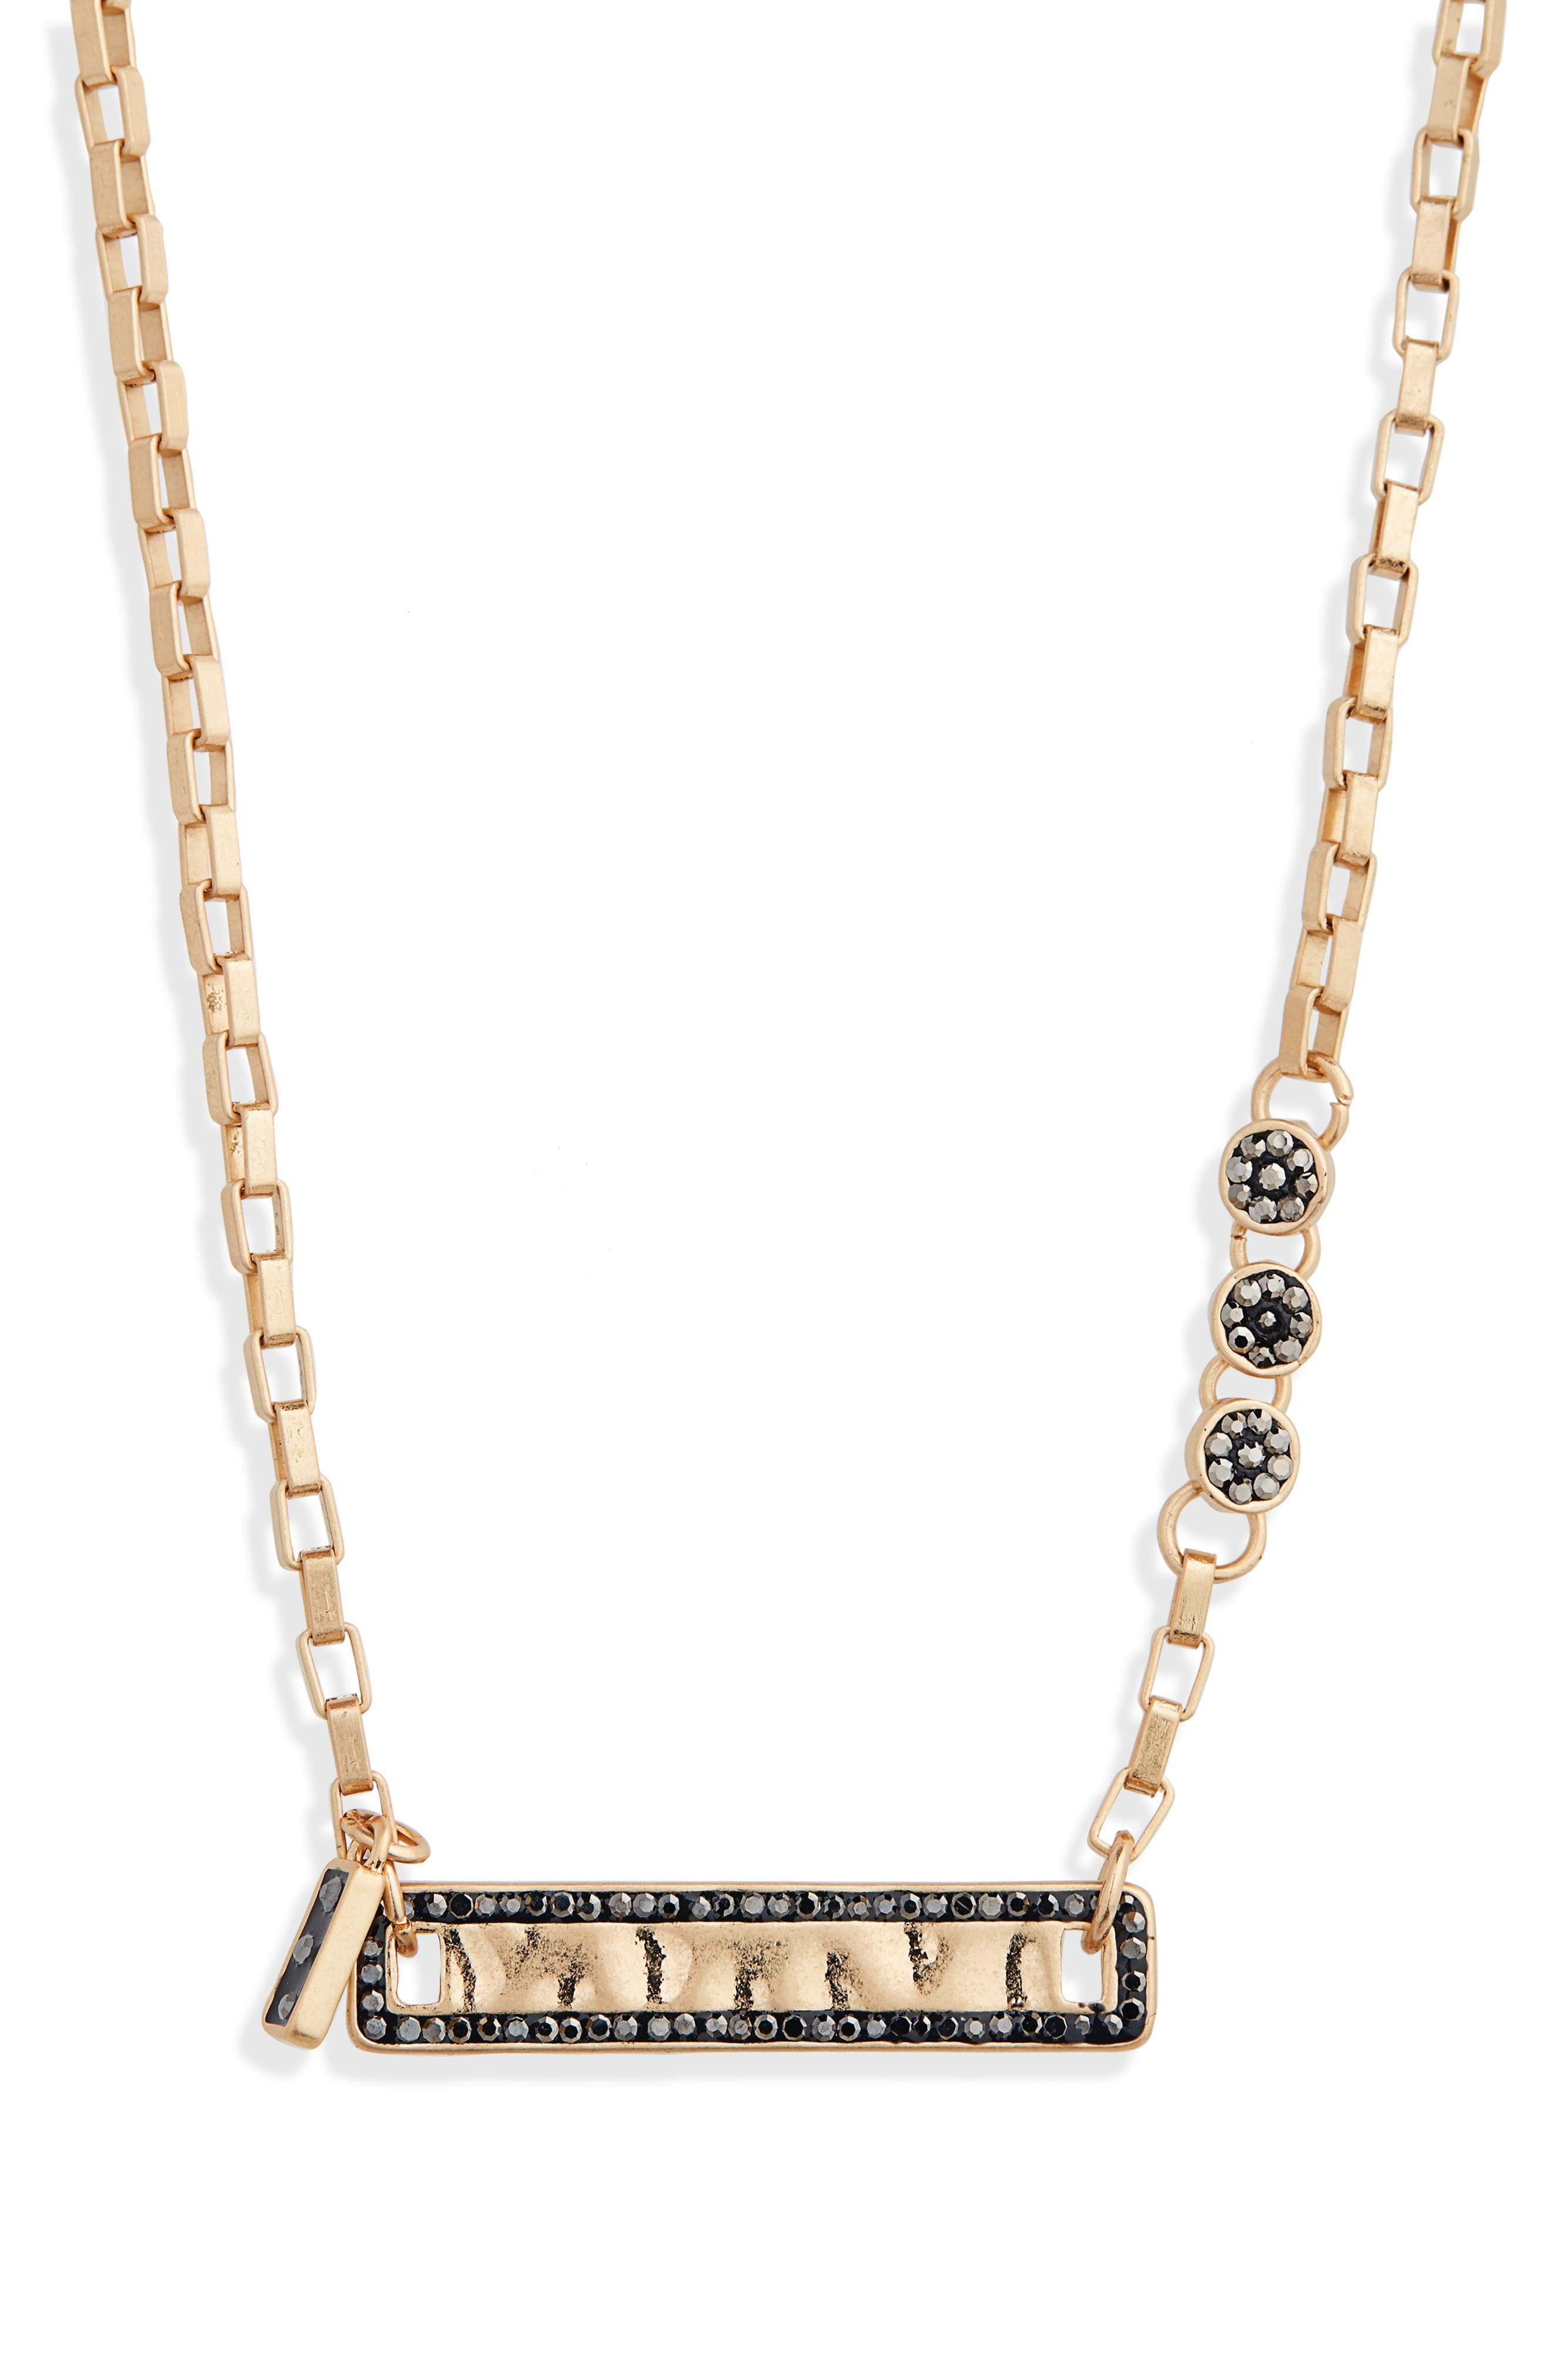 Crystal Embellished Bar Necklace,                             Main thumbnail 1, color,                             BLACK DIAMOND/ GOLD